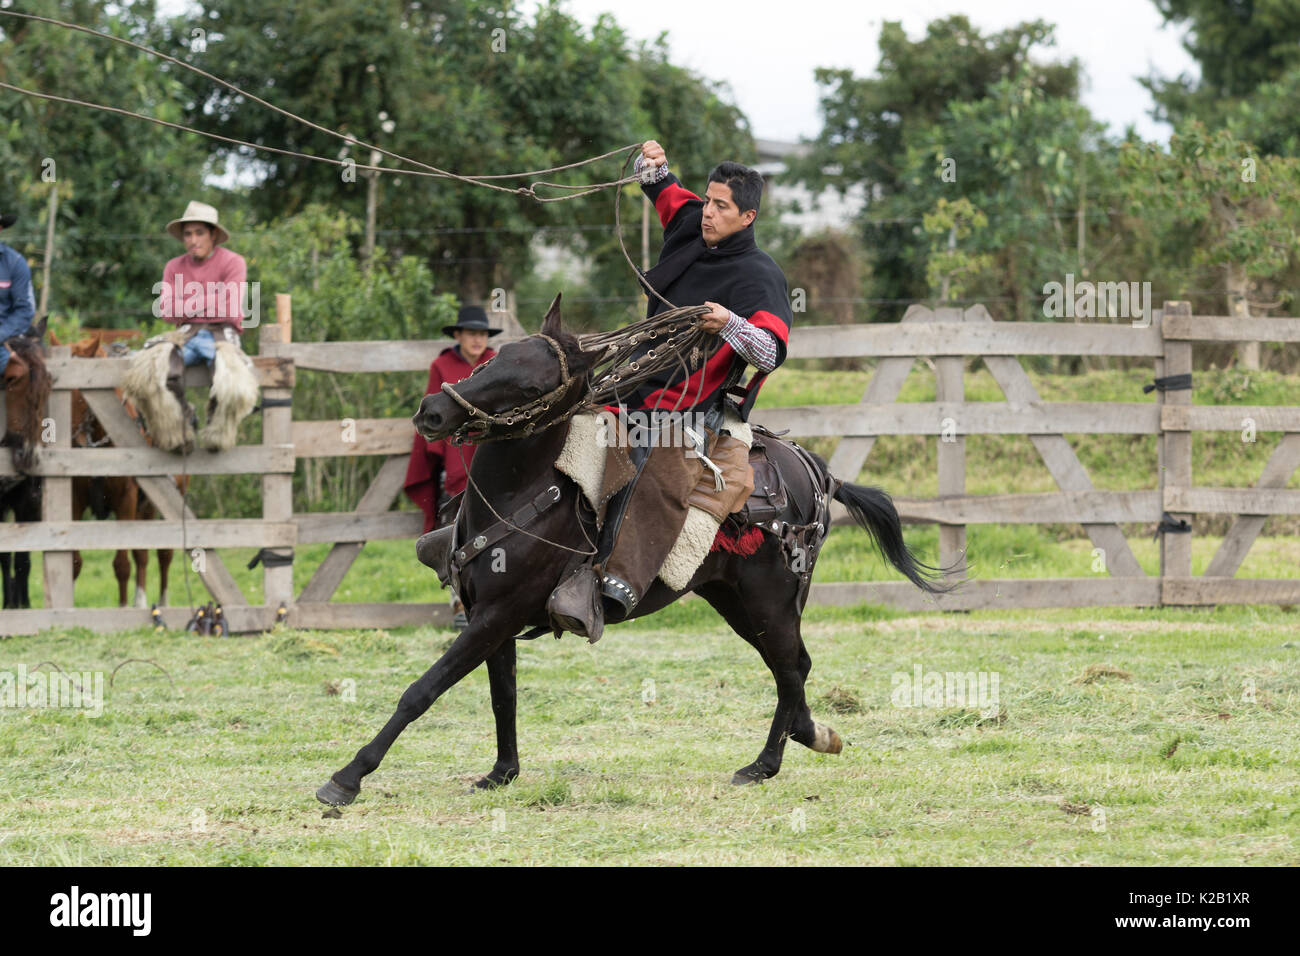 June 3, 2017 Machachi, Ecuador: cowboy in the Andes riding horse and exercising the lasso - Stock Image